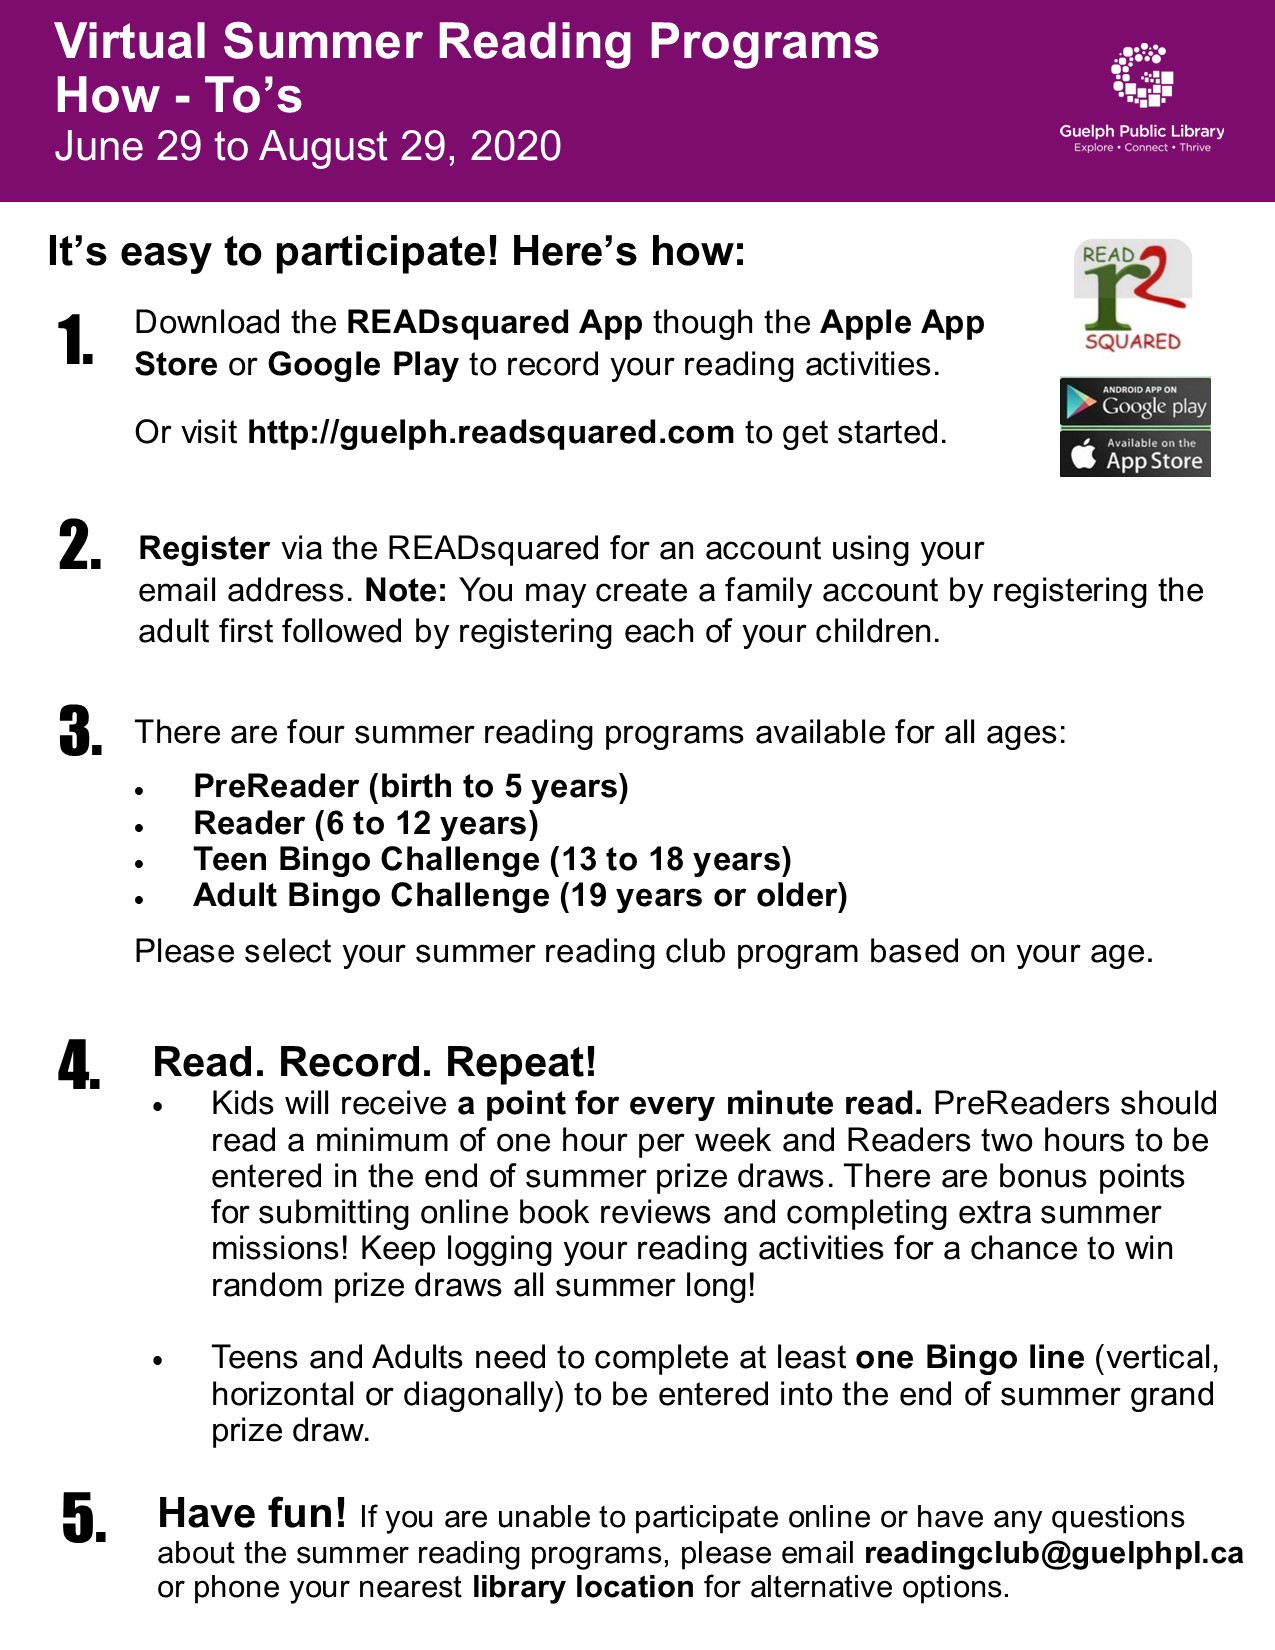 Virtual Summer Reading Program How-To's